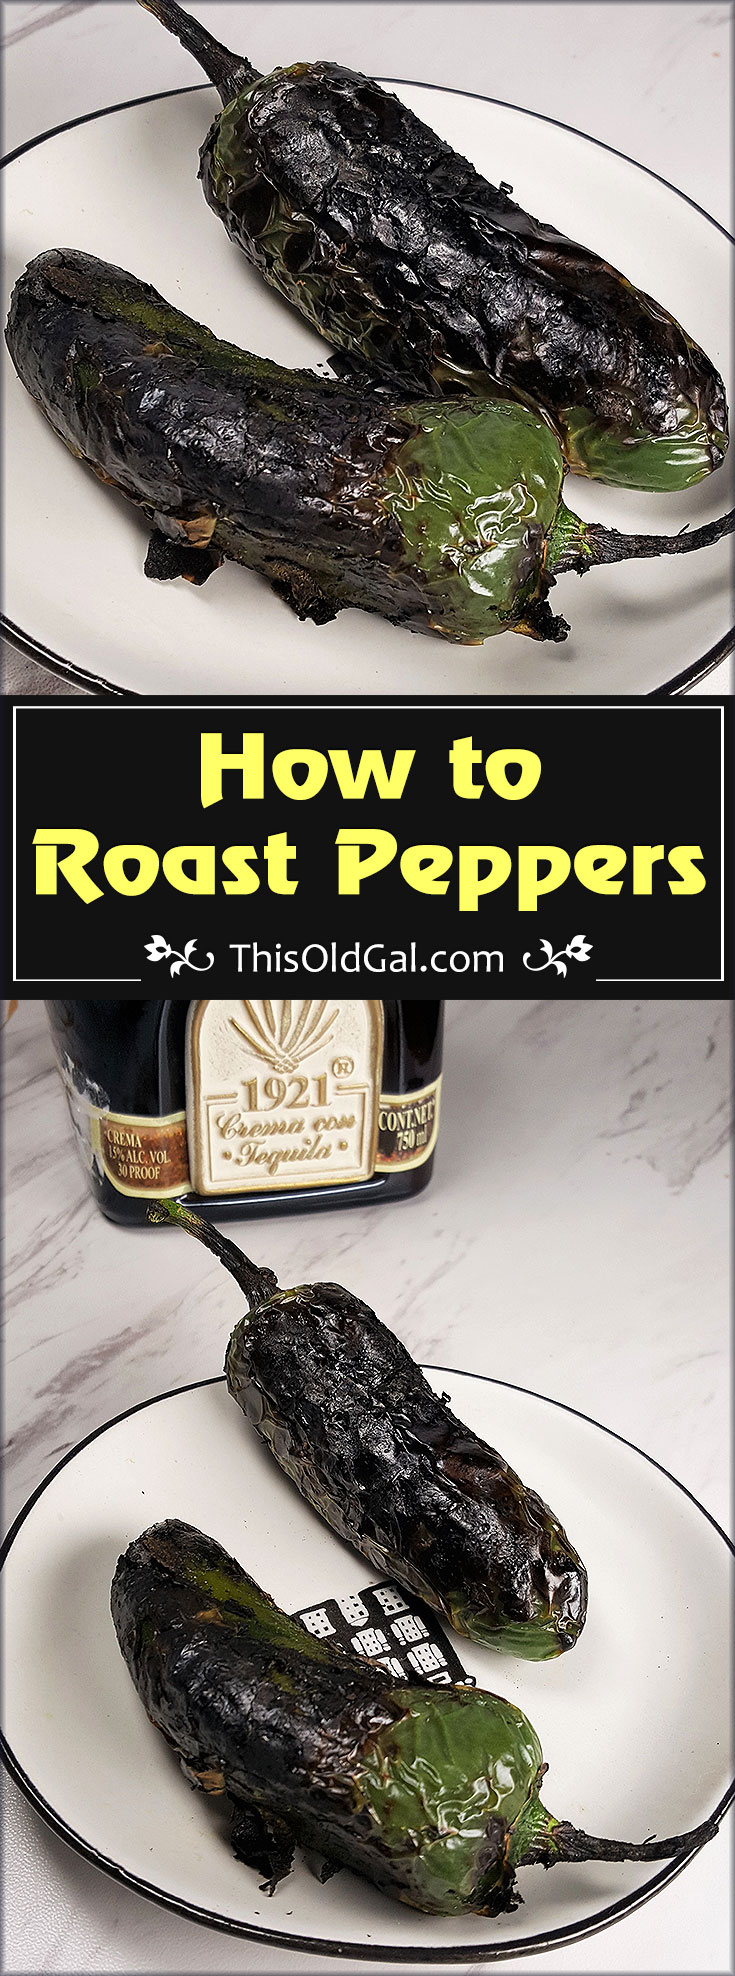 How To Roast any type of Chili Peppers or Bell Peppers